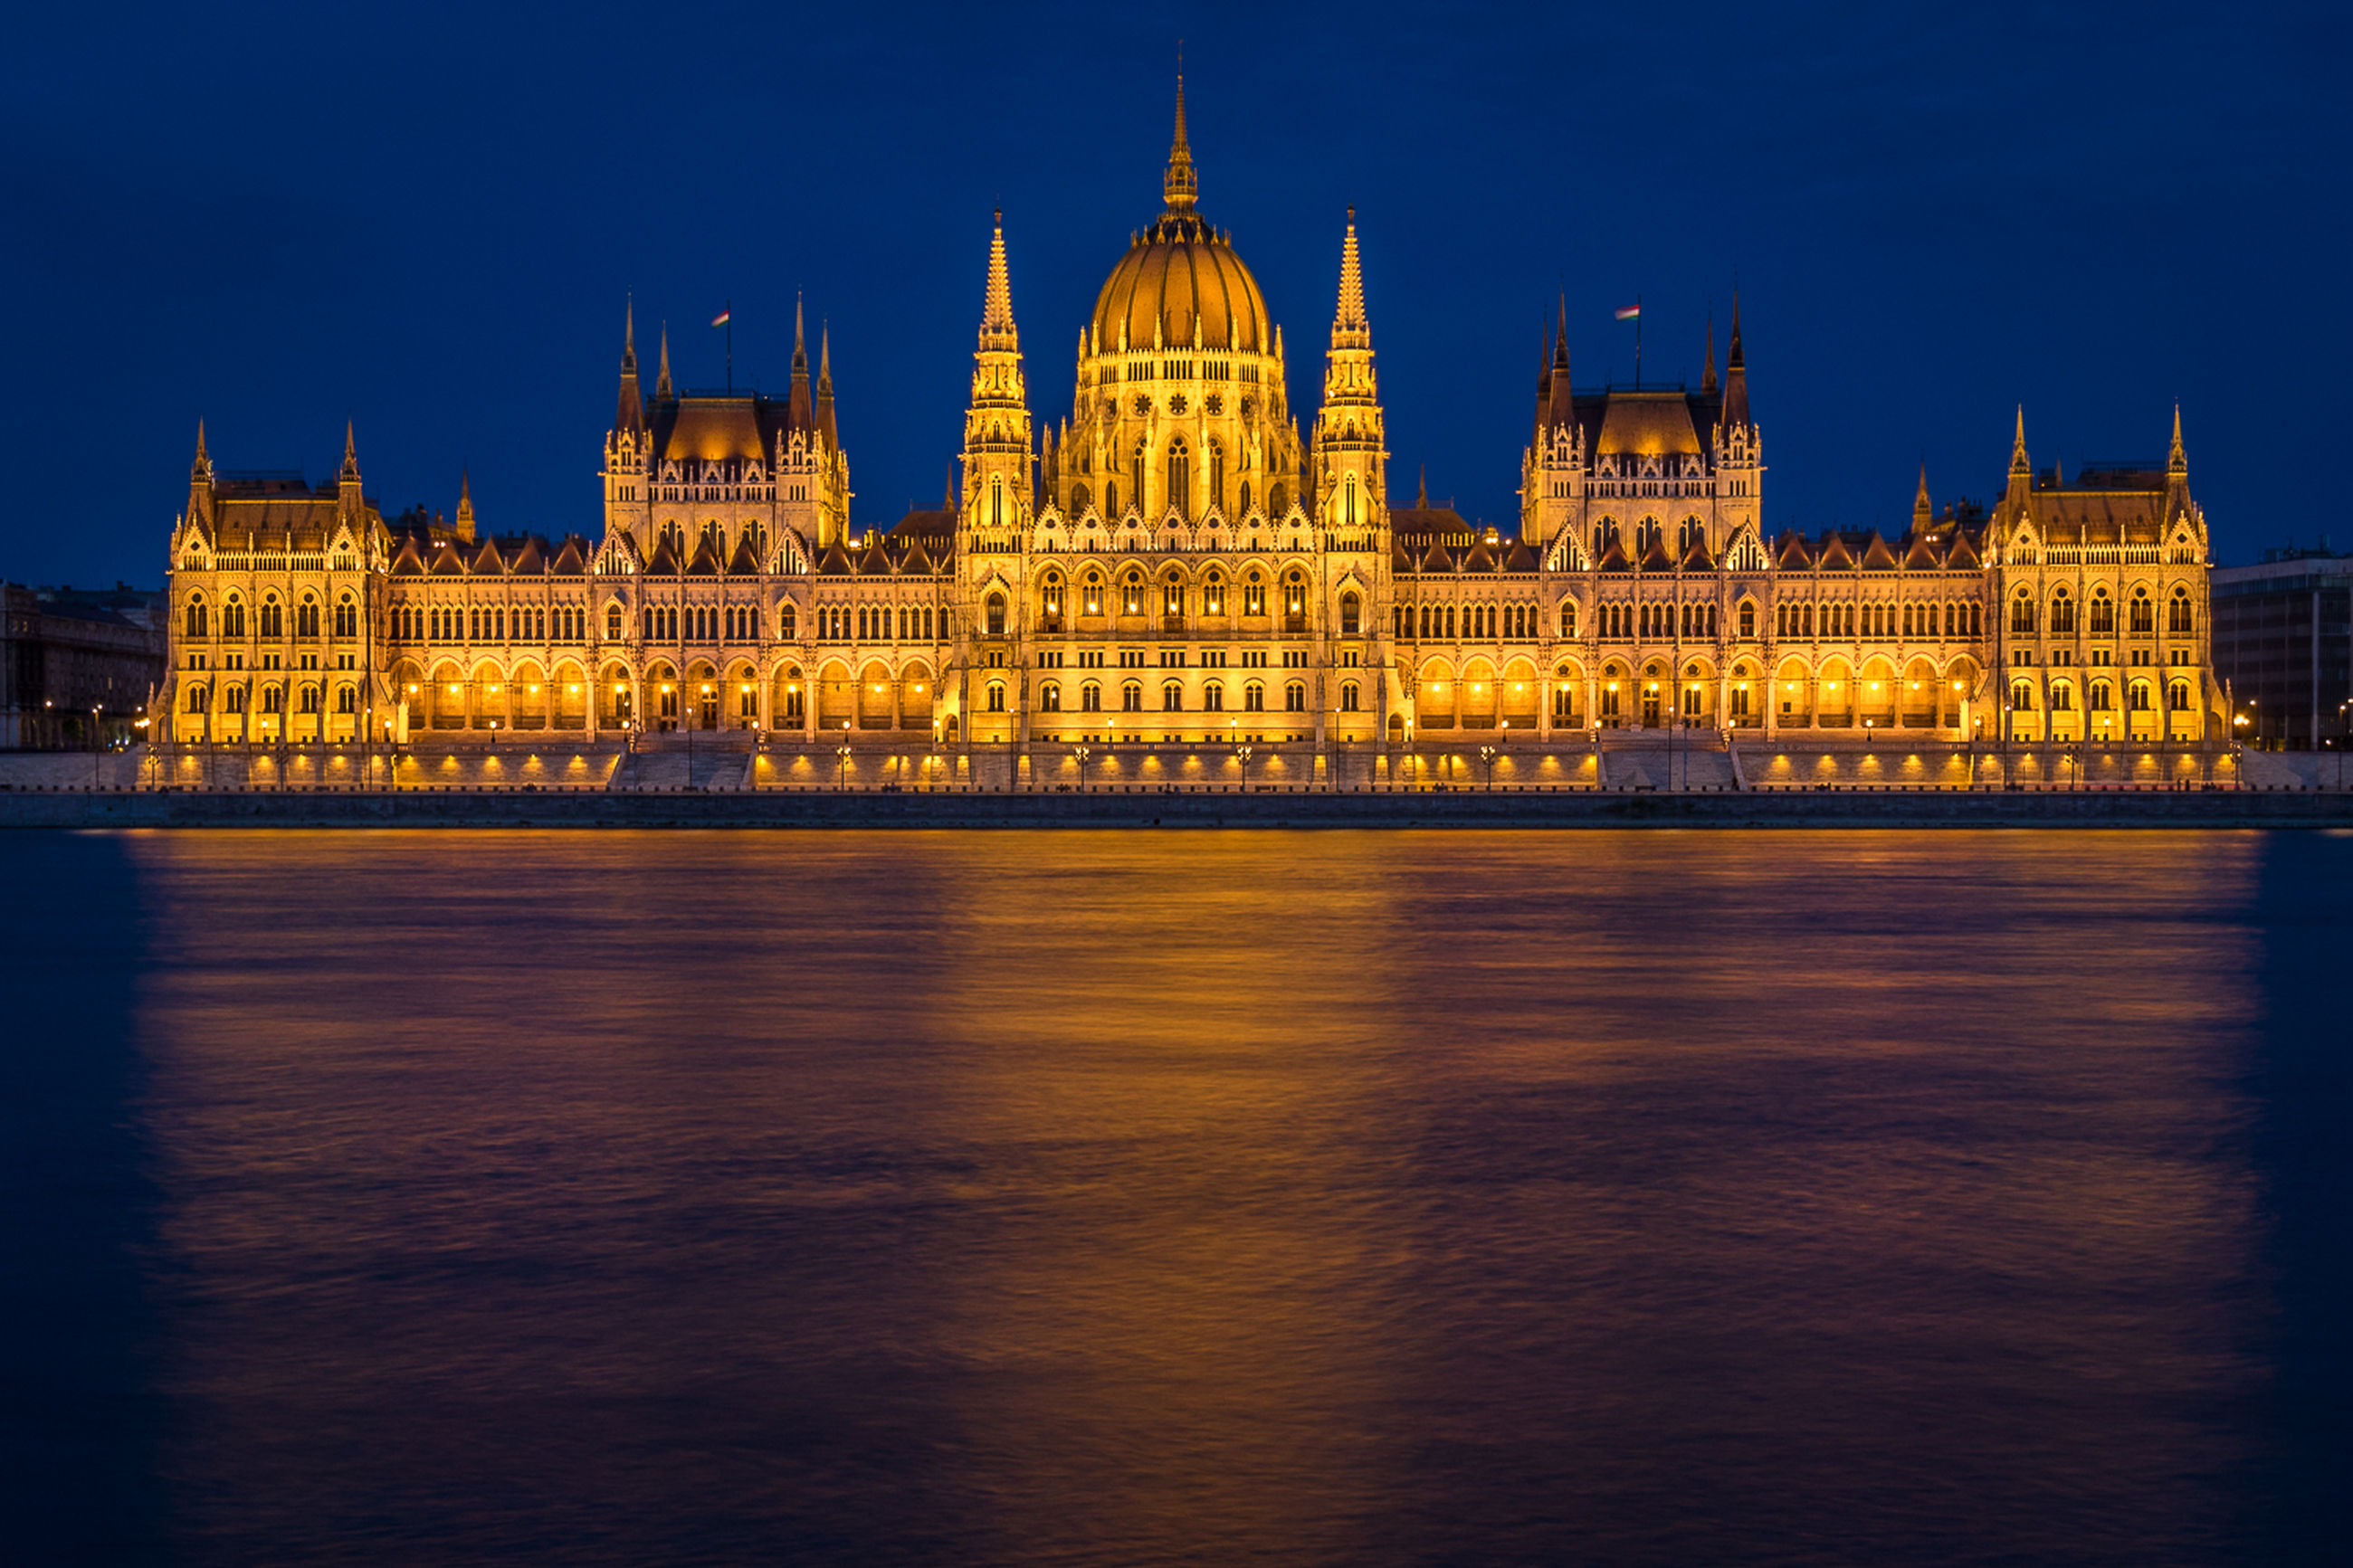 building exterior, built structure, travel destinations, architecture, illuminated, city, water, tourism, travel, river, night, sky, waterfront, government, no people, outdoors